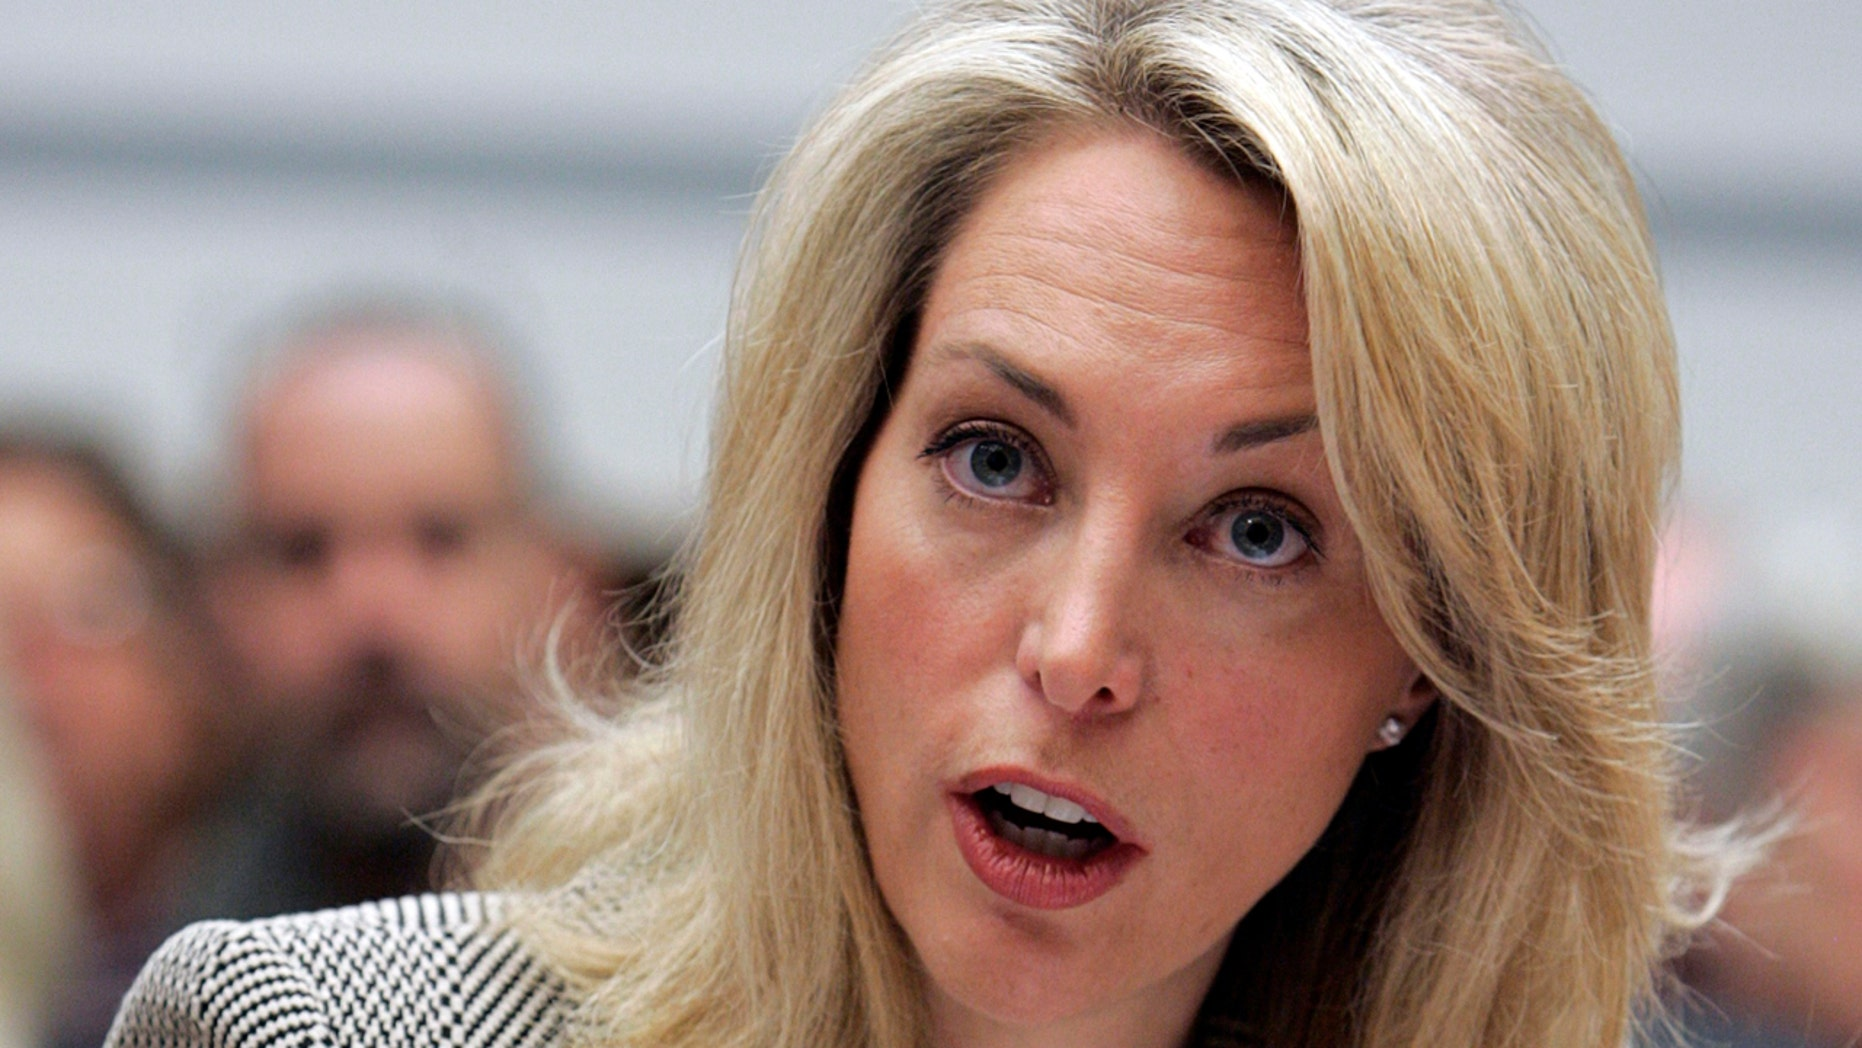 Former CIA employee Valerie Plame Wilson testifies at a House Oversight and Government Reform Committee hearing on Capitol Hill in Washington March 16, 2007. (Reuters)